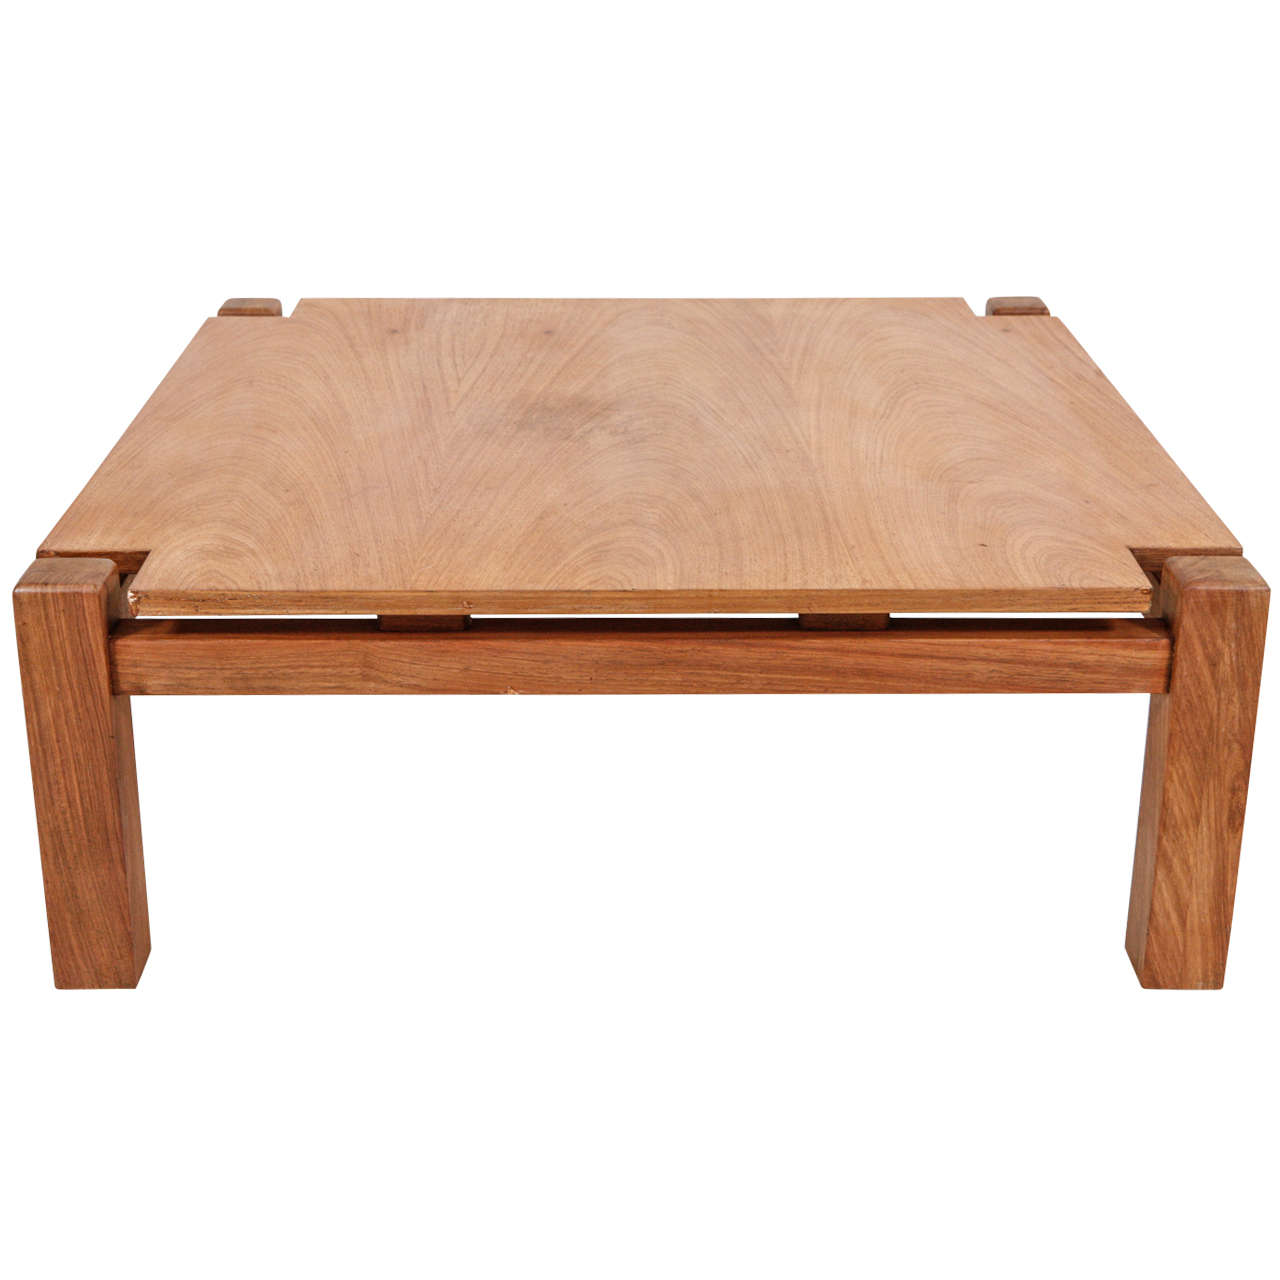 Modern mission style coffee table at 1stdibs for Modern chic coffee tables